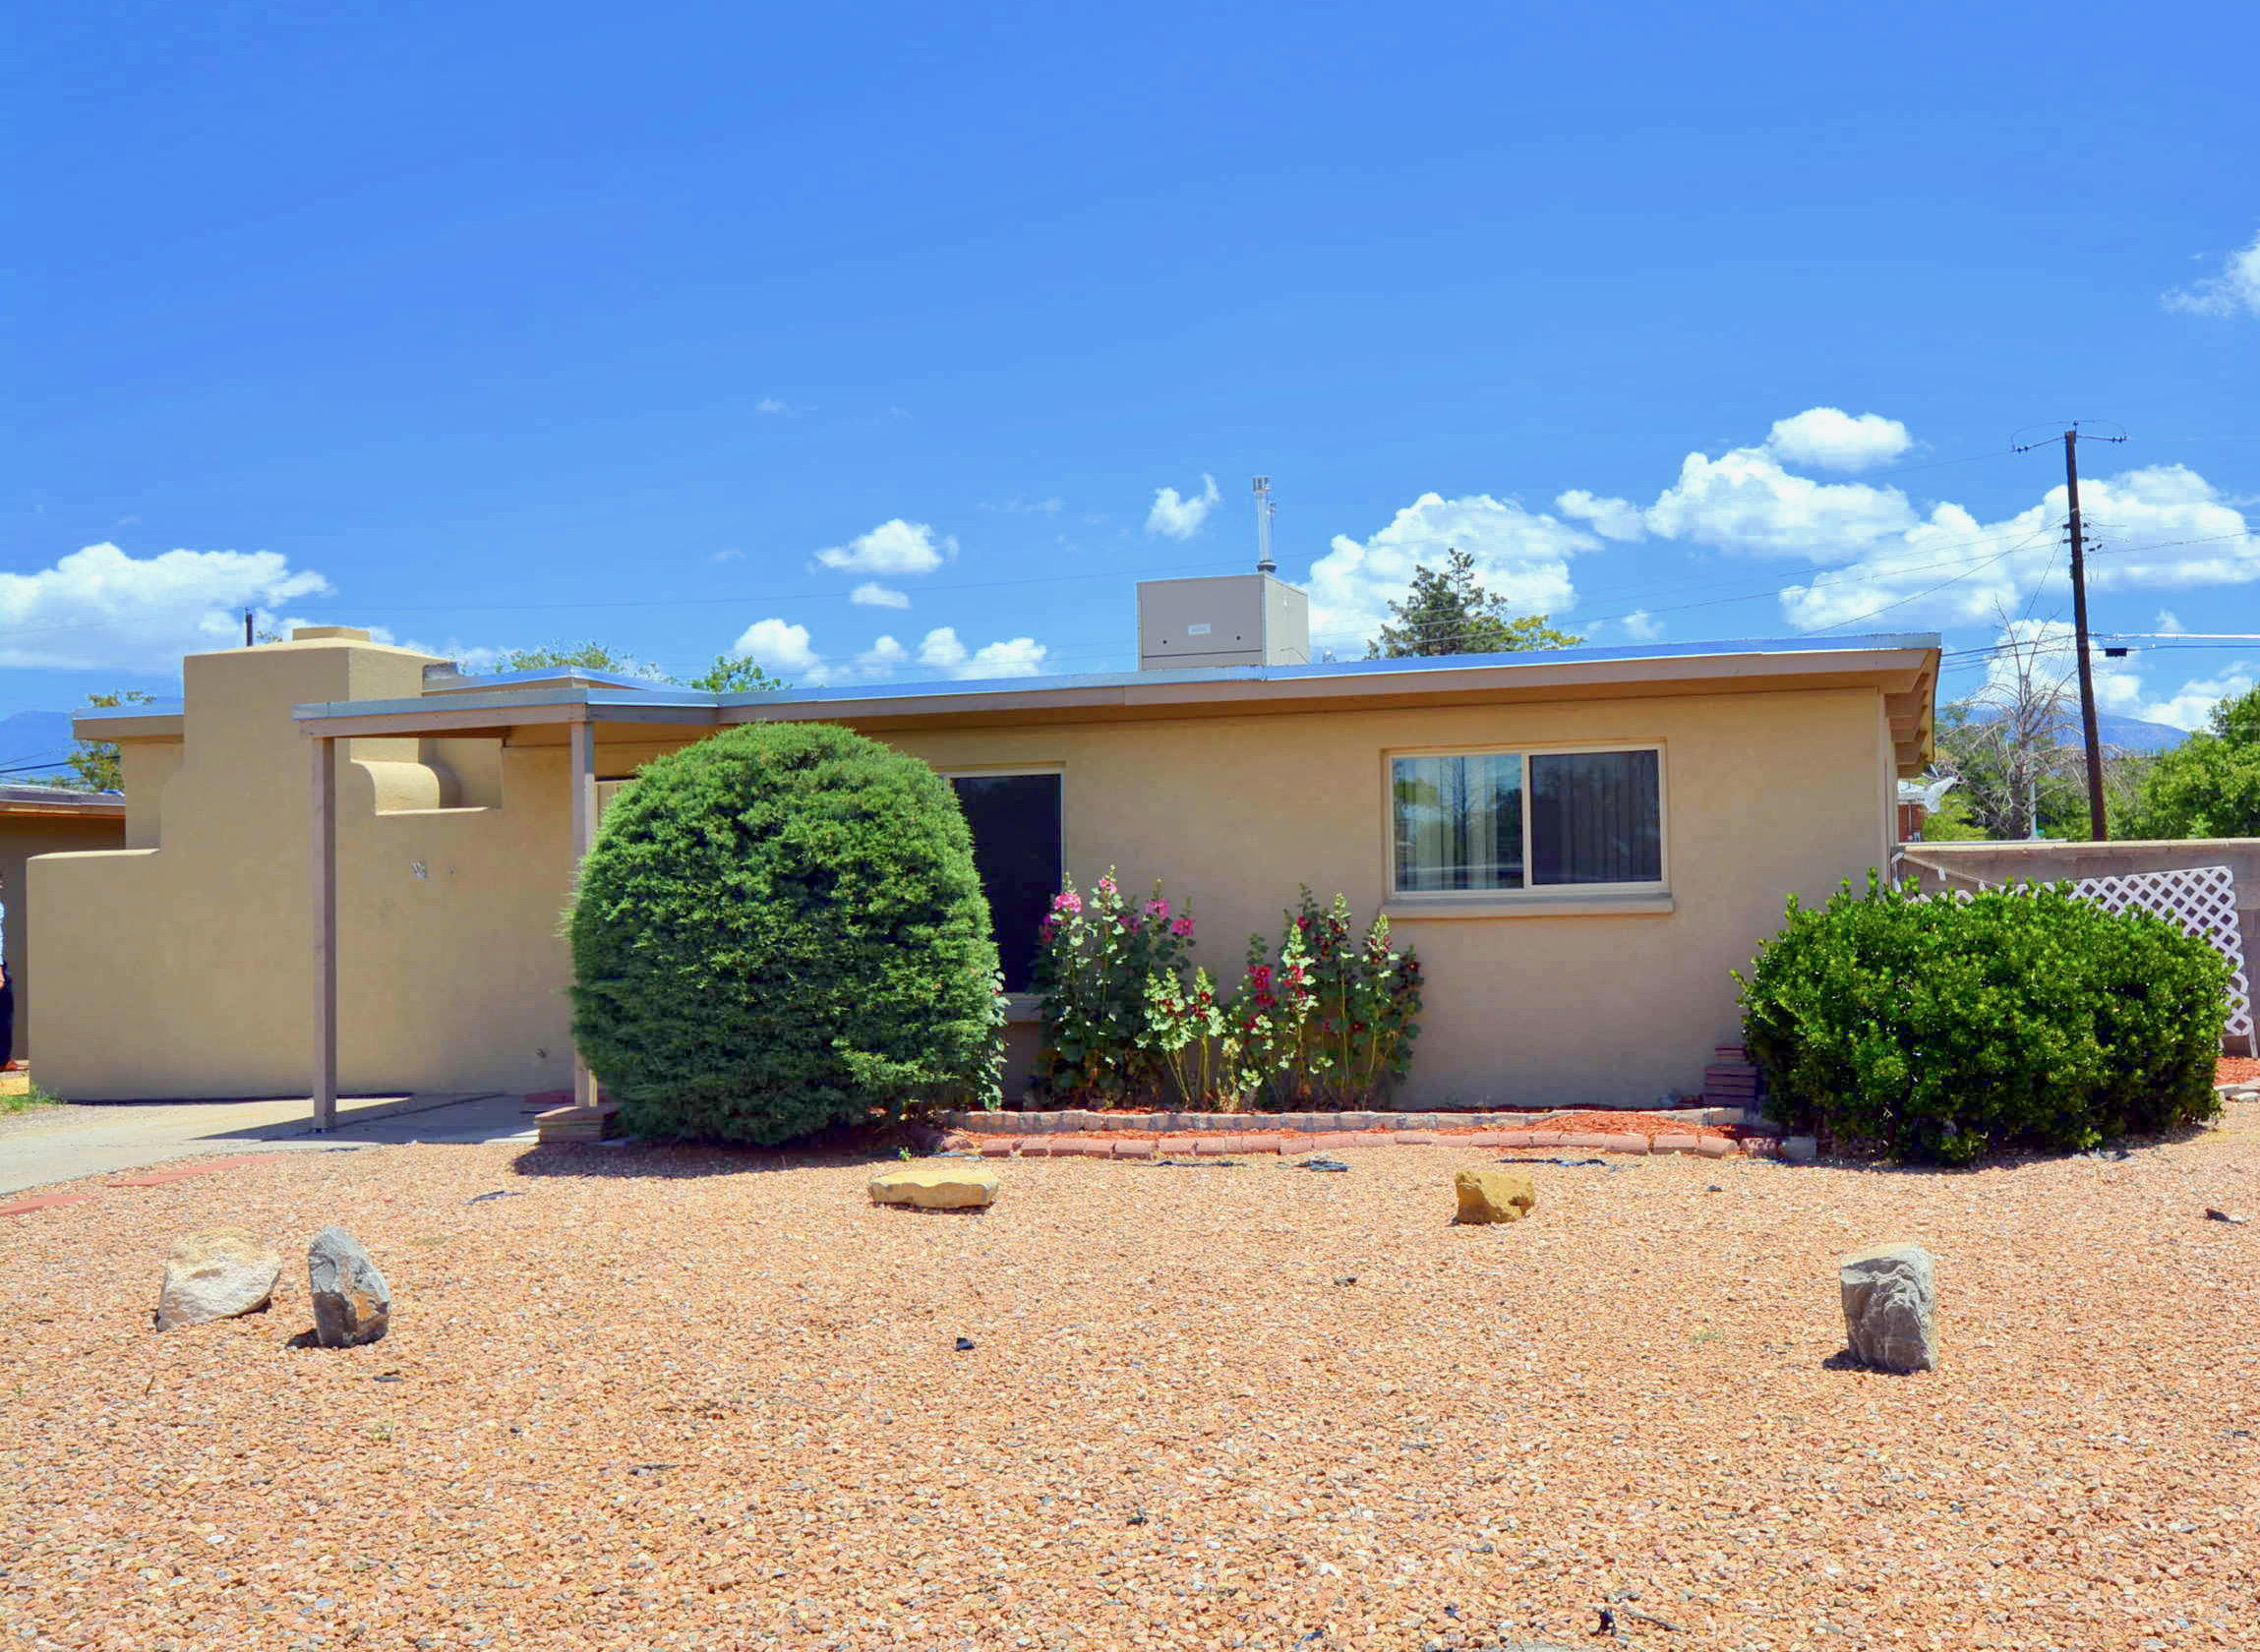 Great Starter home in incredible location! Walking distance to Coronado, ABQ Uptown, shopping and restaurants. Large corner lot with backyard access and room to expand.  2 bedroom 1 bath with tons of potential...Updated kitchen with tile backsplash, updated cabinets  Double-pane windows, central forced air. Washer and Dryer all convey as is.  Square footage obtained from County records and is subject to verification.